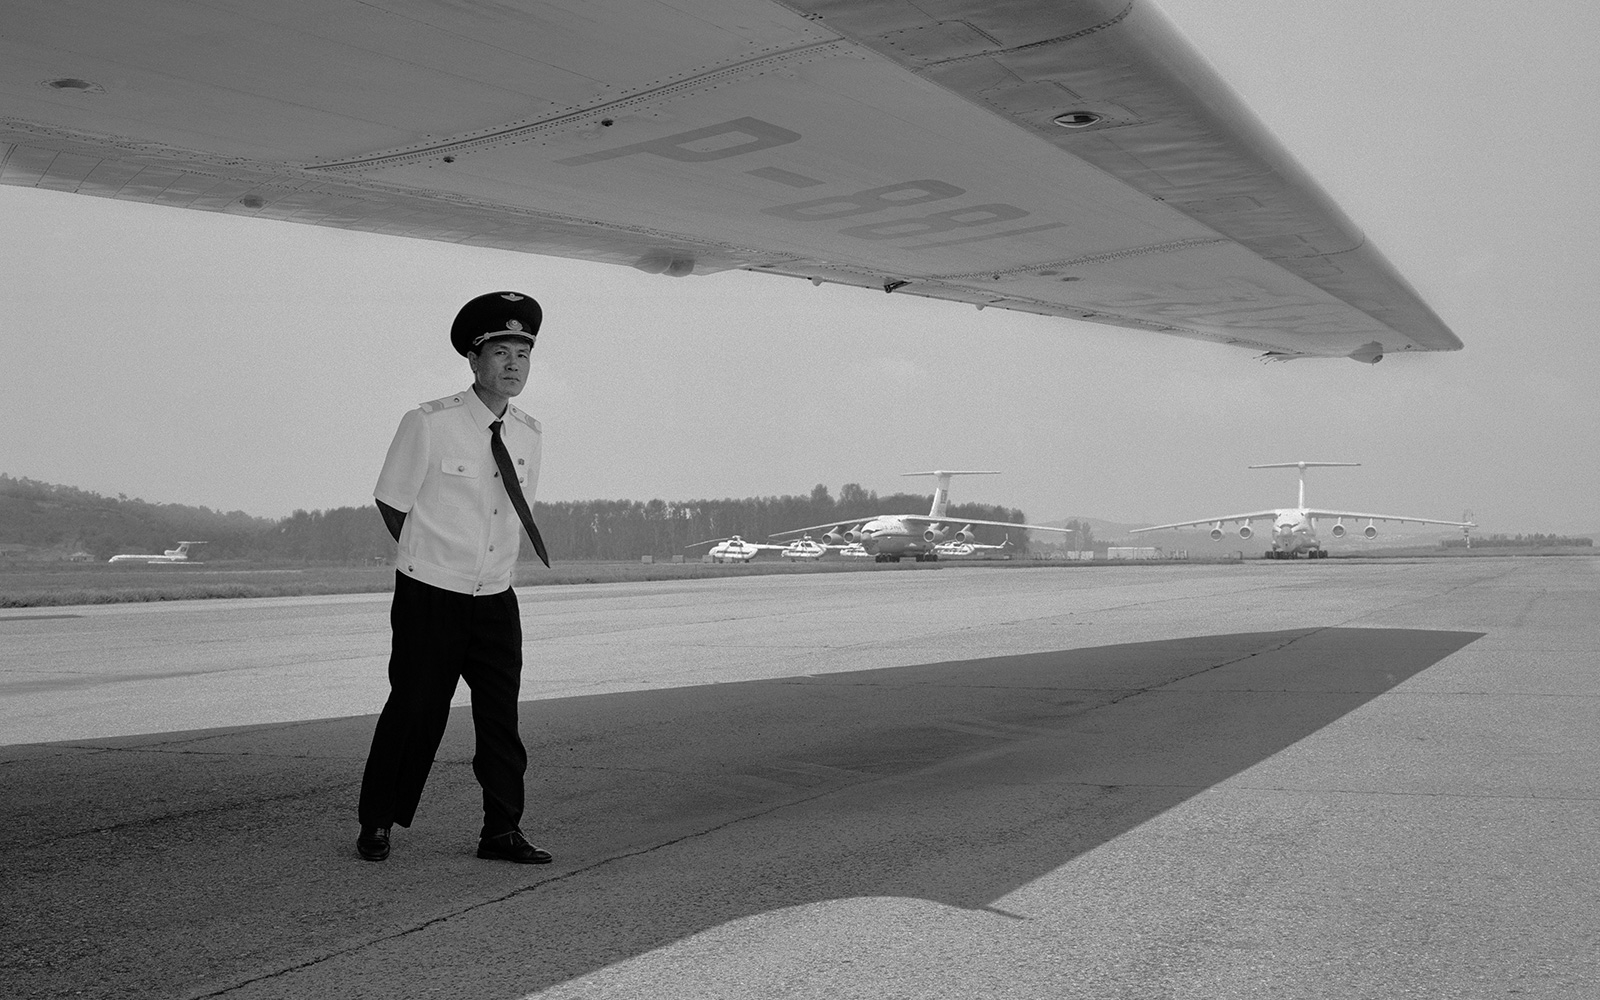 NORTH KOREA. Sunan International Airport. 2011.